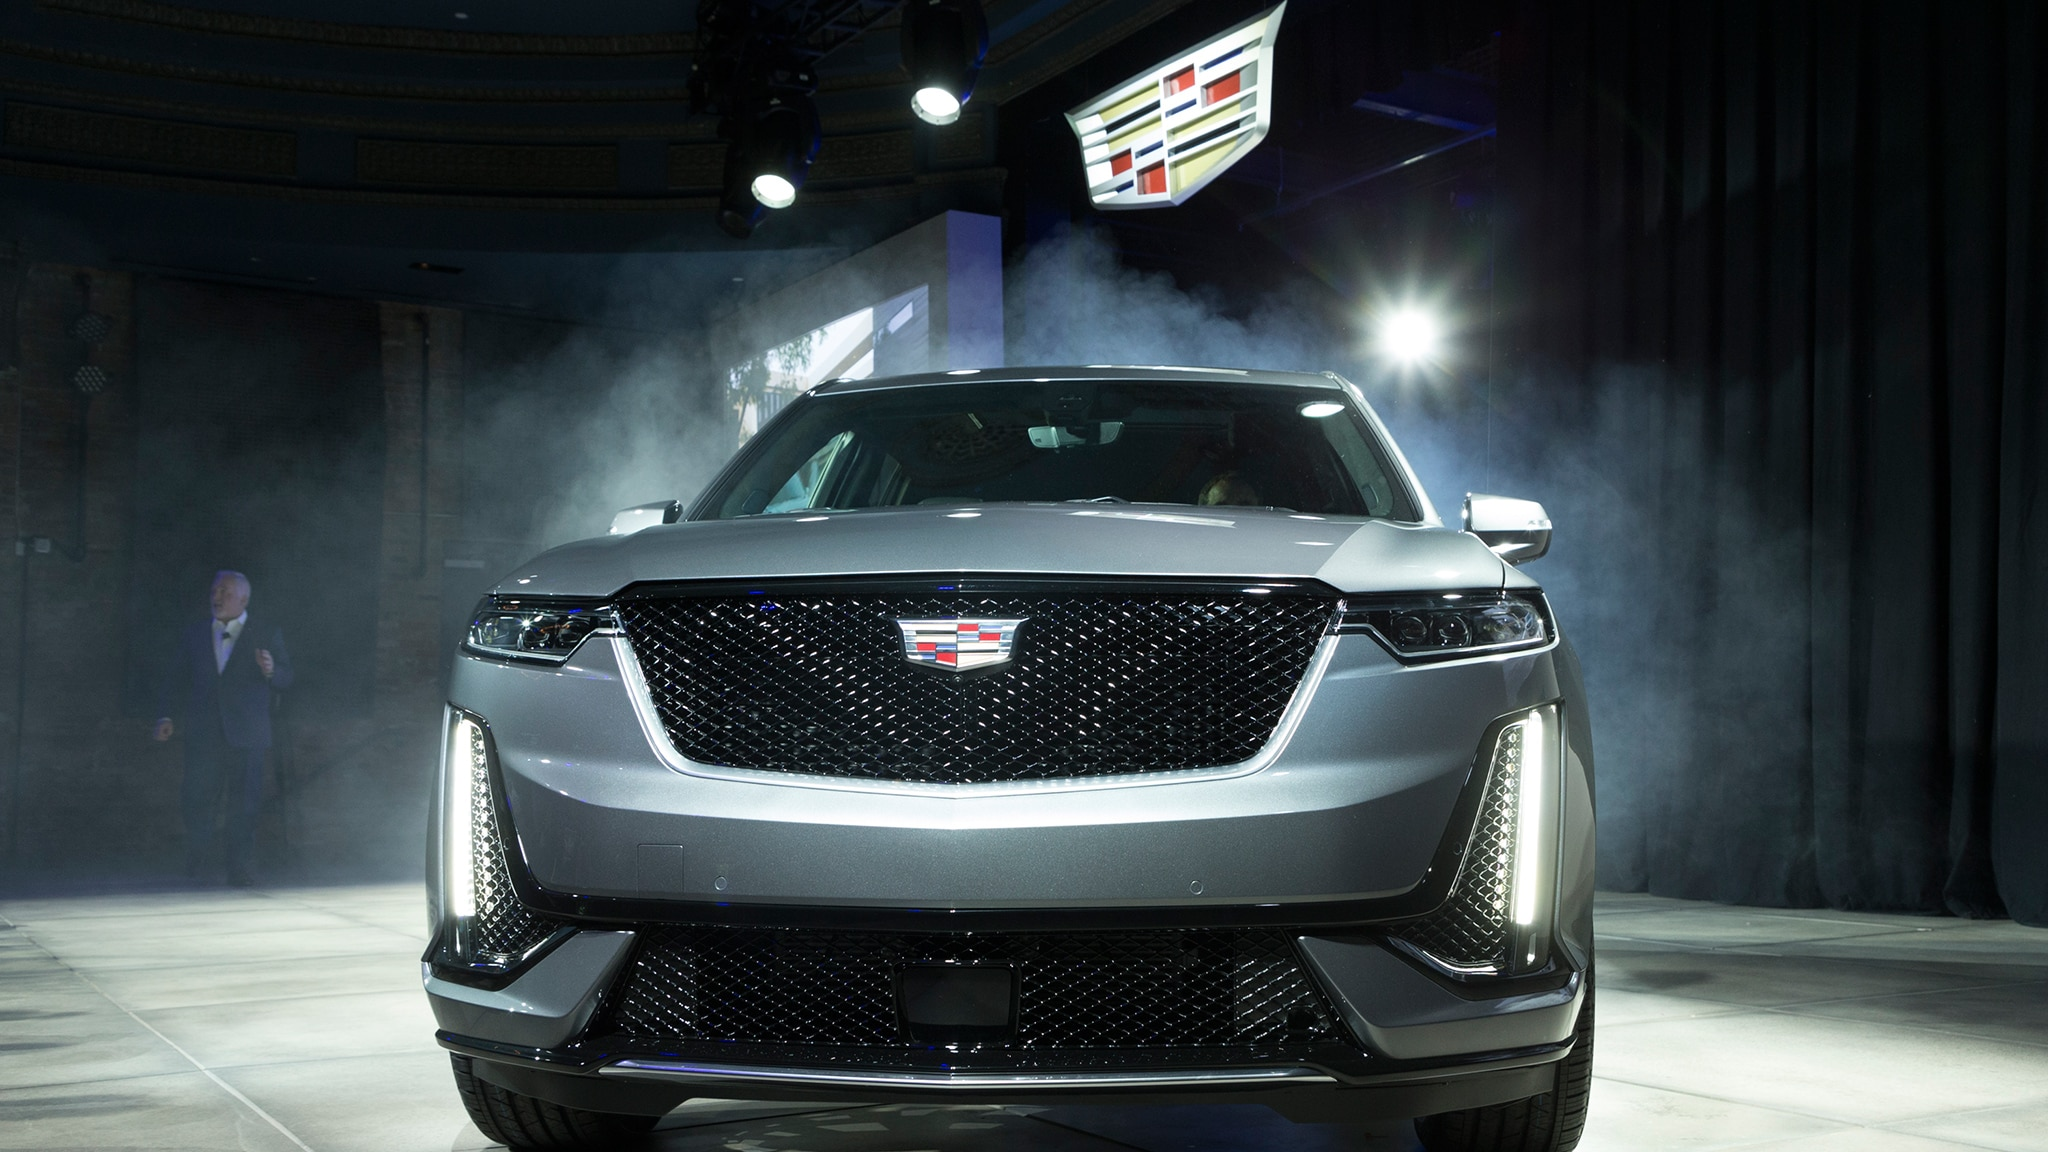 2020 Cadillac Xt6 A More Genteel Three Row Crossover Suv